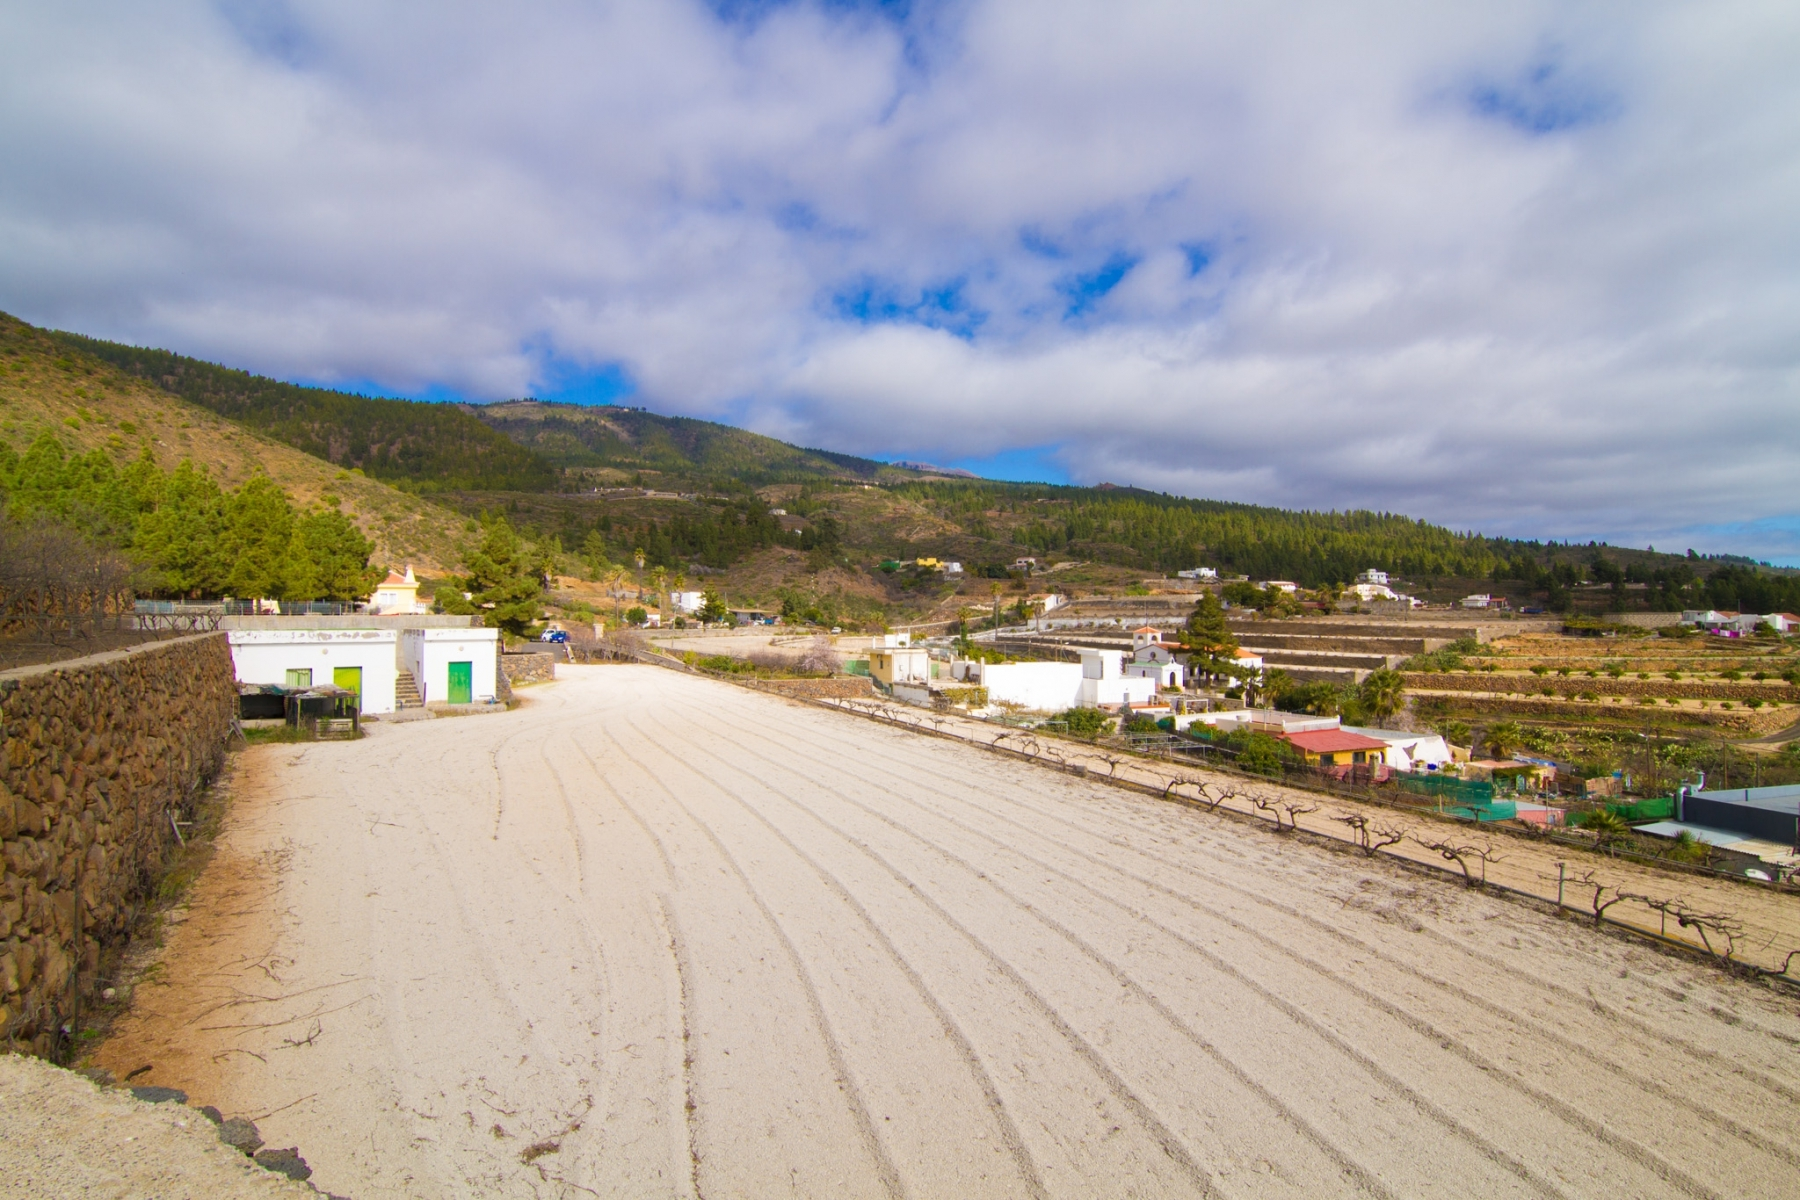 Properties for Sale in Tenerife, Canary Islands, Spain | SylkWayStar Real Estate. Finca with vineyard - Cruz de Tea - Granadilla de Abona . Image-21834